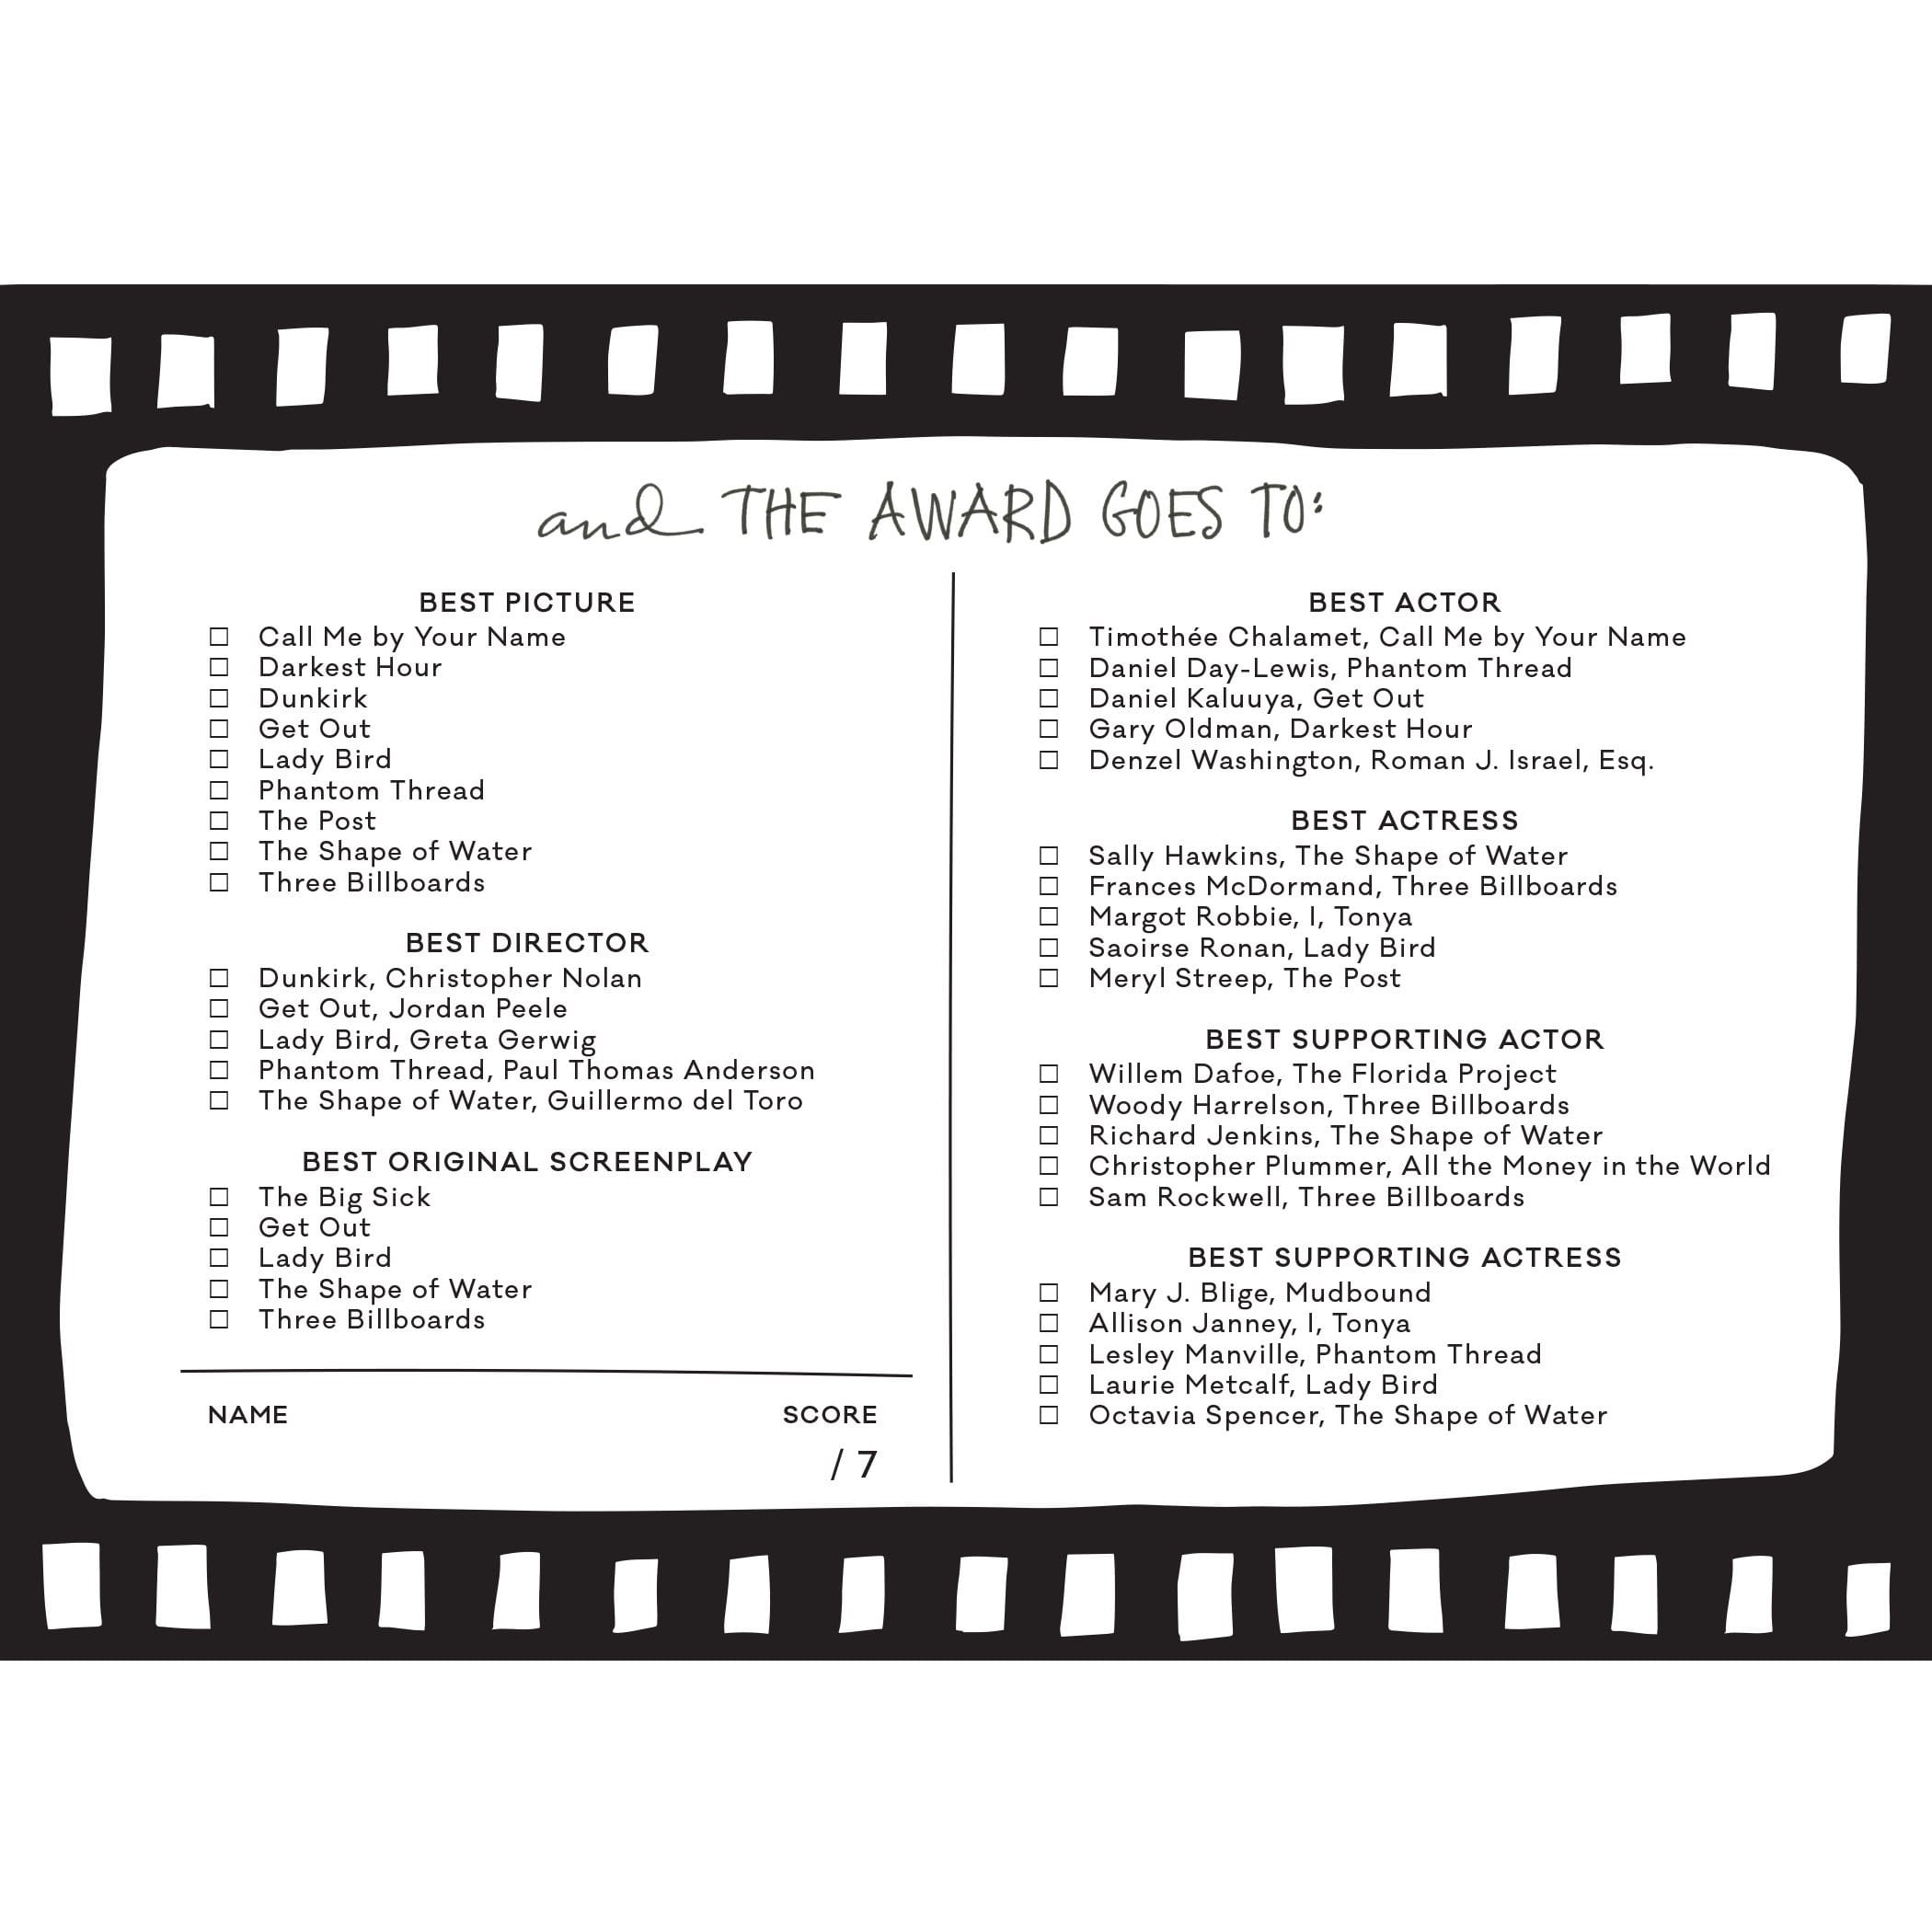 2017 Golden Globe Awards Printable Ballot as well Academy Awards 2014 Jason Bateman Jennifer Lopez Among Actors Invited To Join Oscar  mittee moreover Grammys 2018 Printable Ballot Black White List Free Nominations together with The Past Left Out Oscars Shortlist as well 2015 Academy Awards Oscars Party. on download your oscar ballot 2